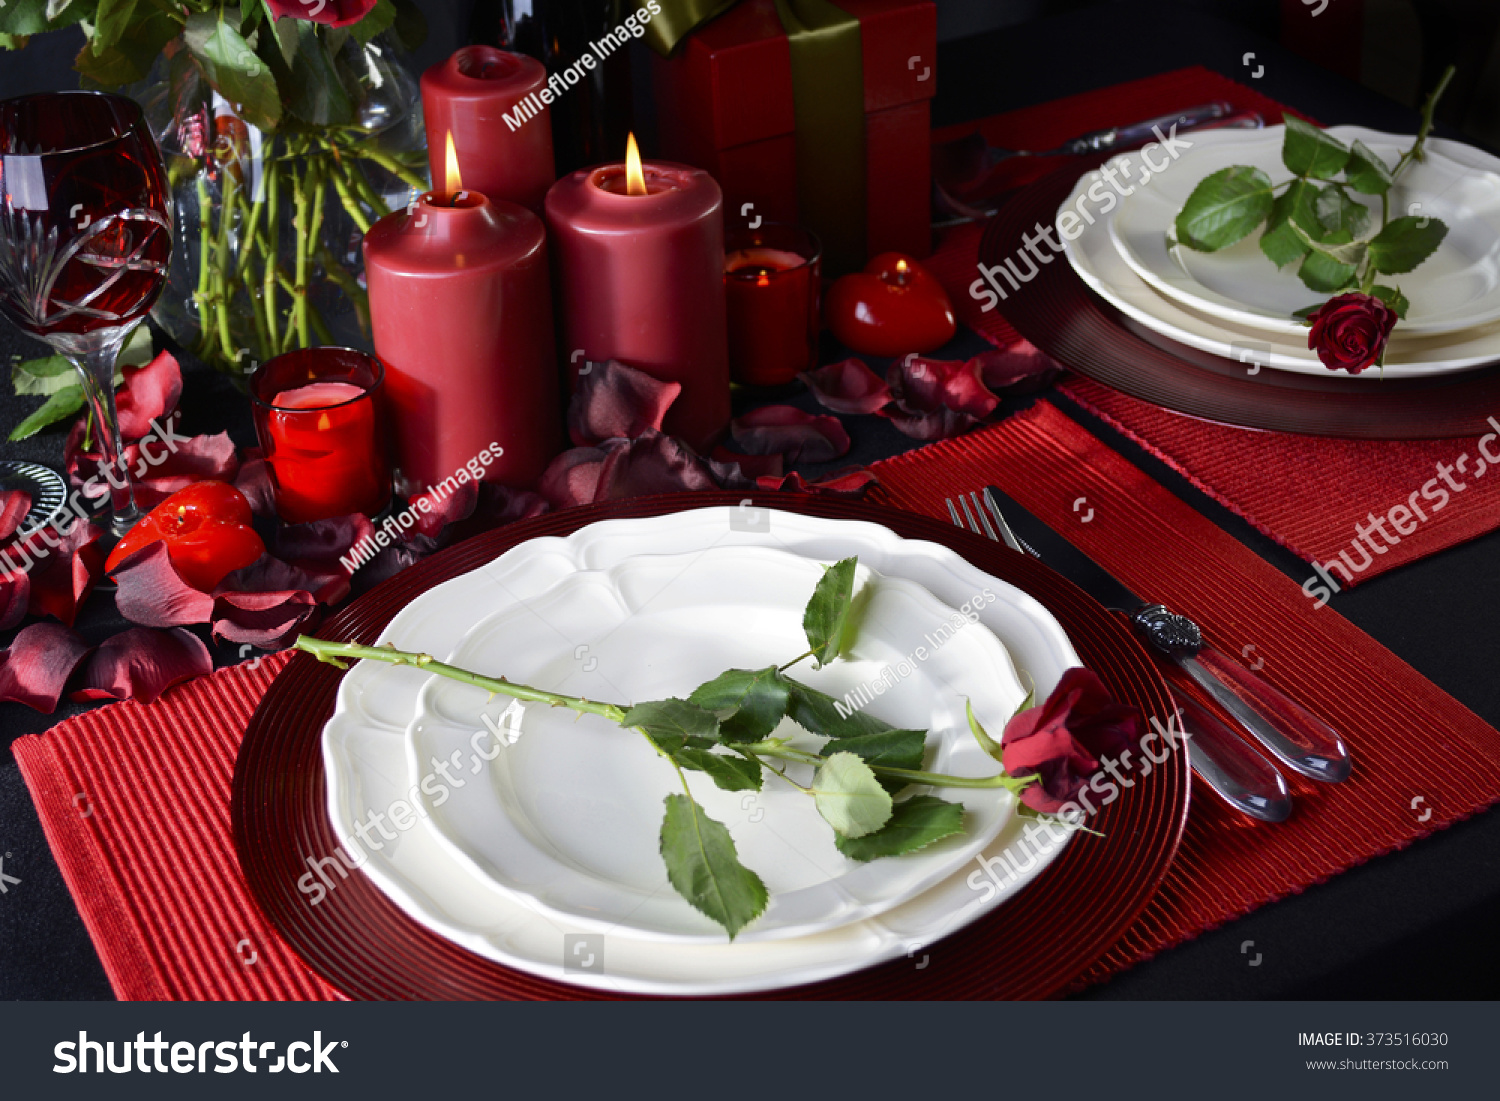 Candle light dinner table for two - Romantic Valentine Candle Light Dinner For Two Table Setting For Two With Red Roses Gift